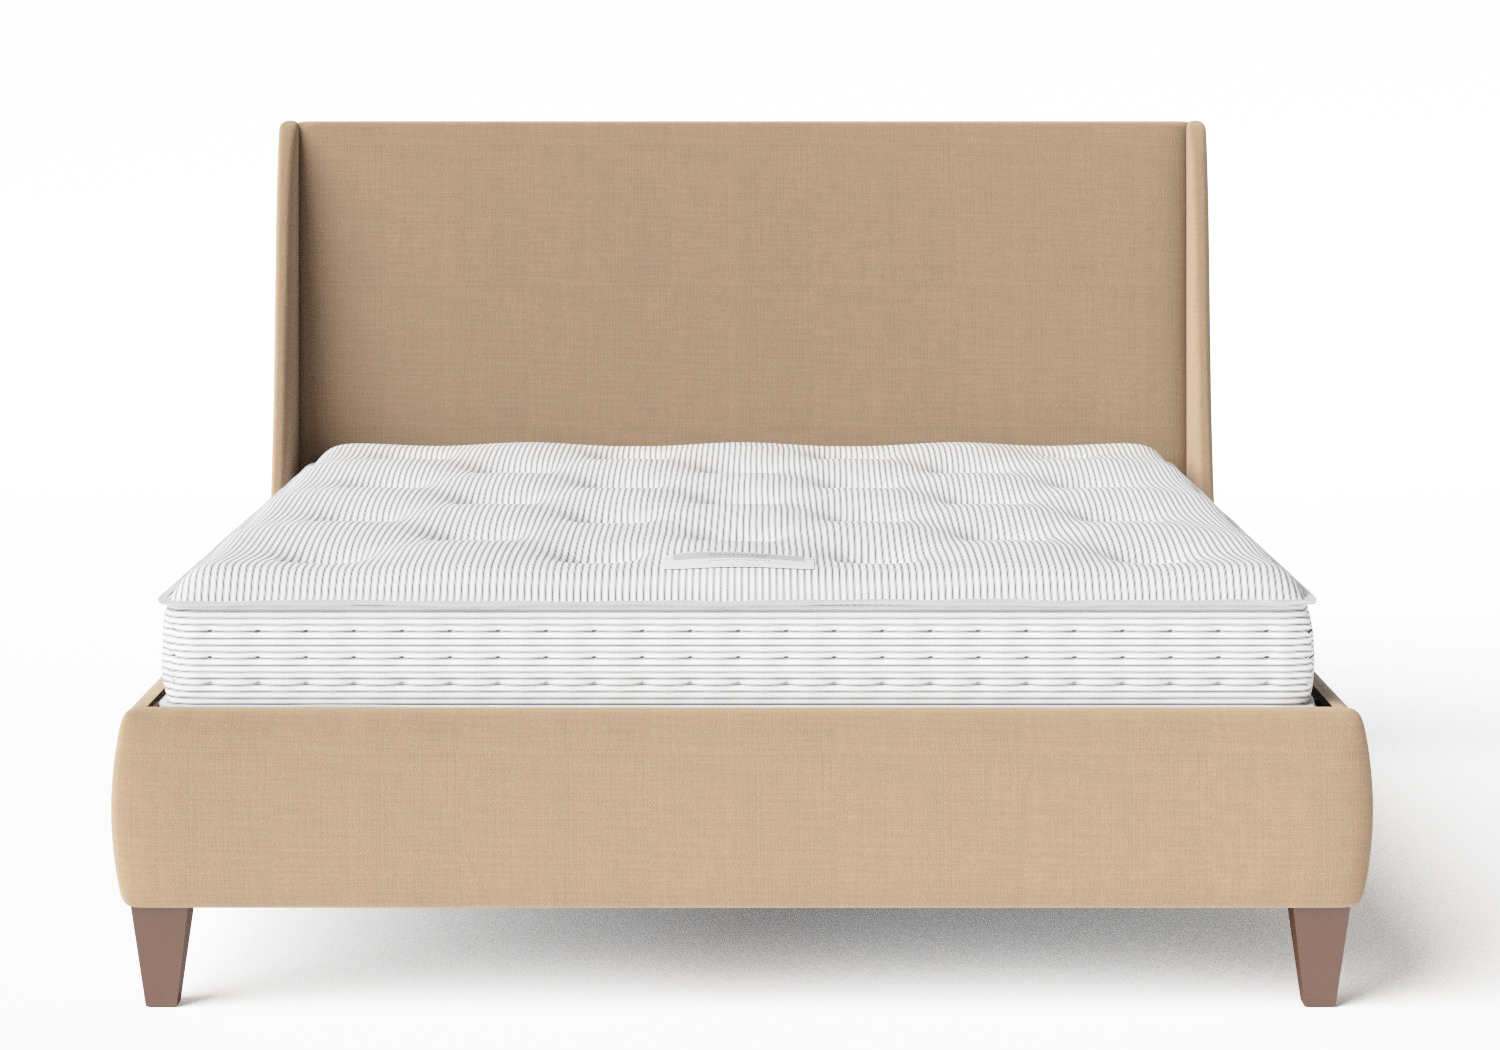 Sunderland Upholstered bed in Straw fabric shown with Juno 1 mattress